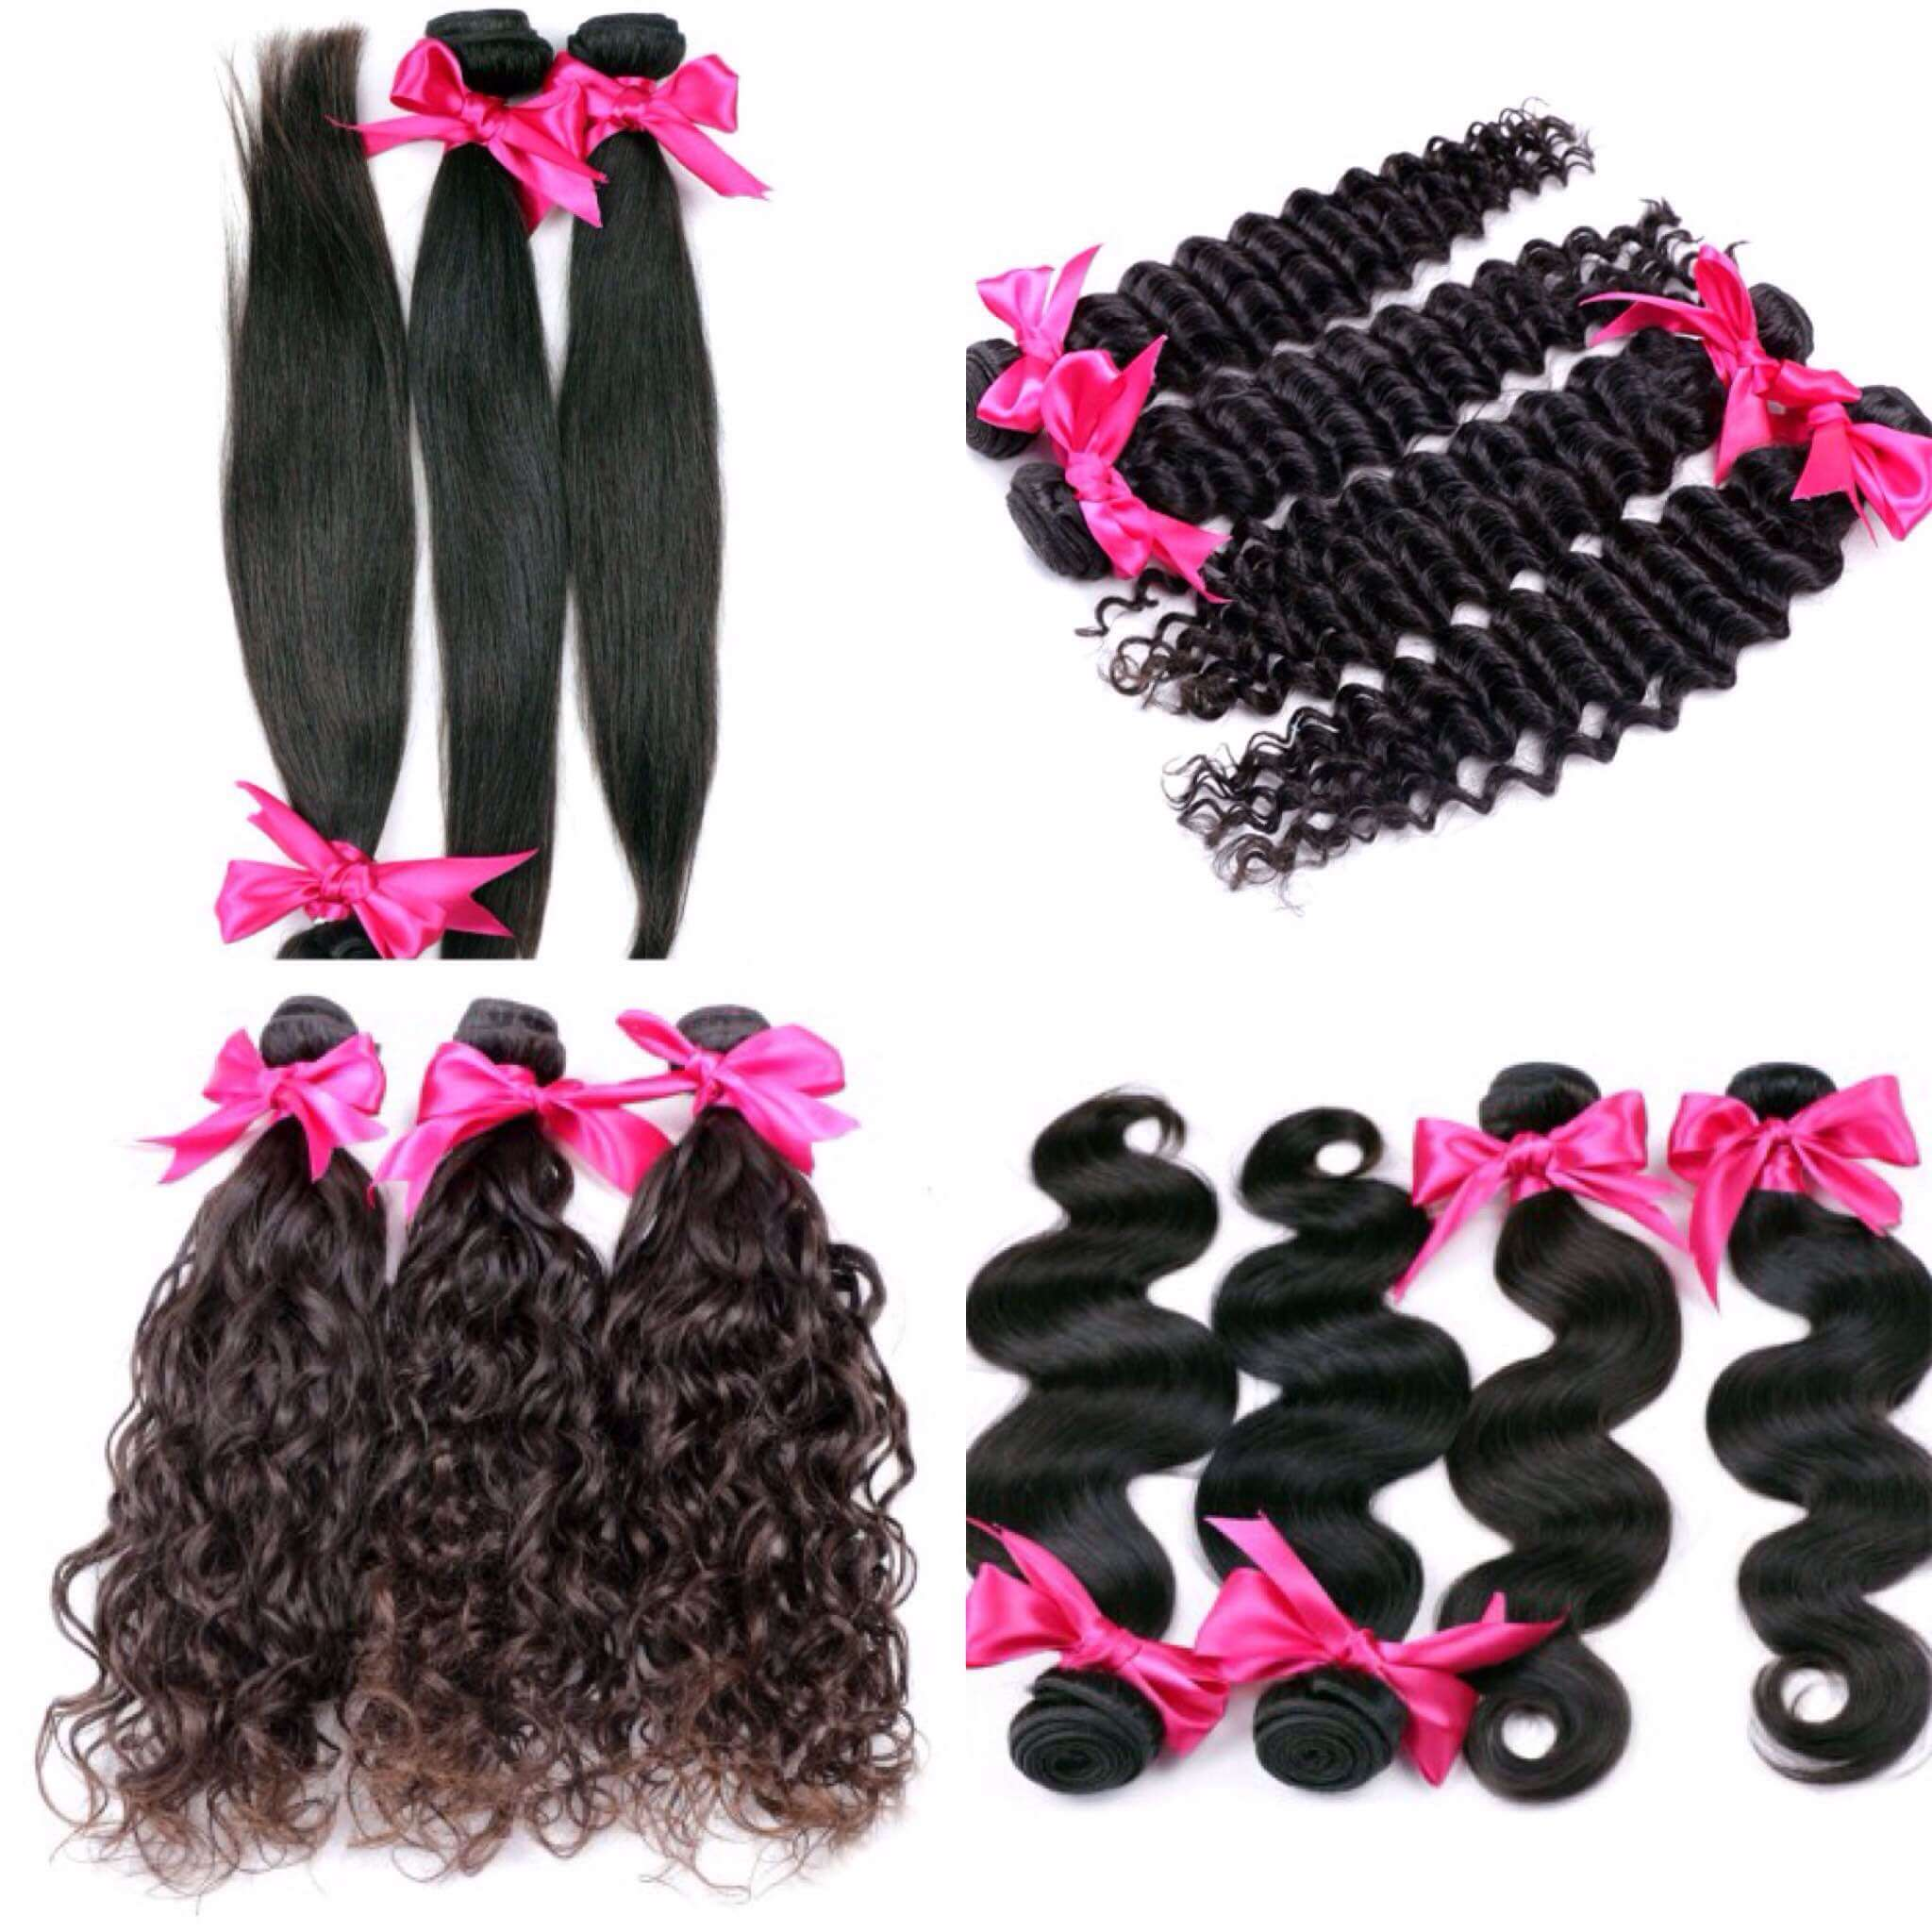 6 A grade virgin human hair Pro Virgin Hair Emporium